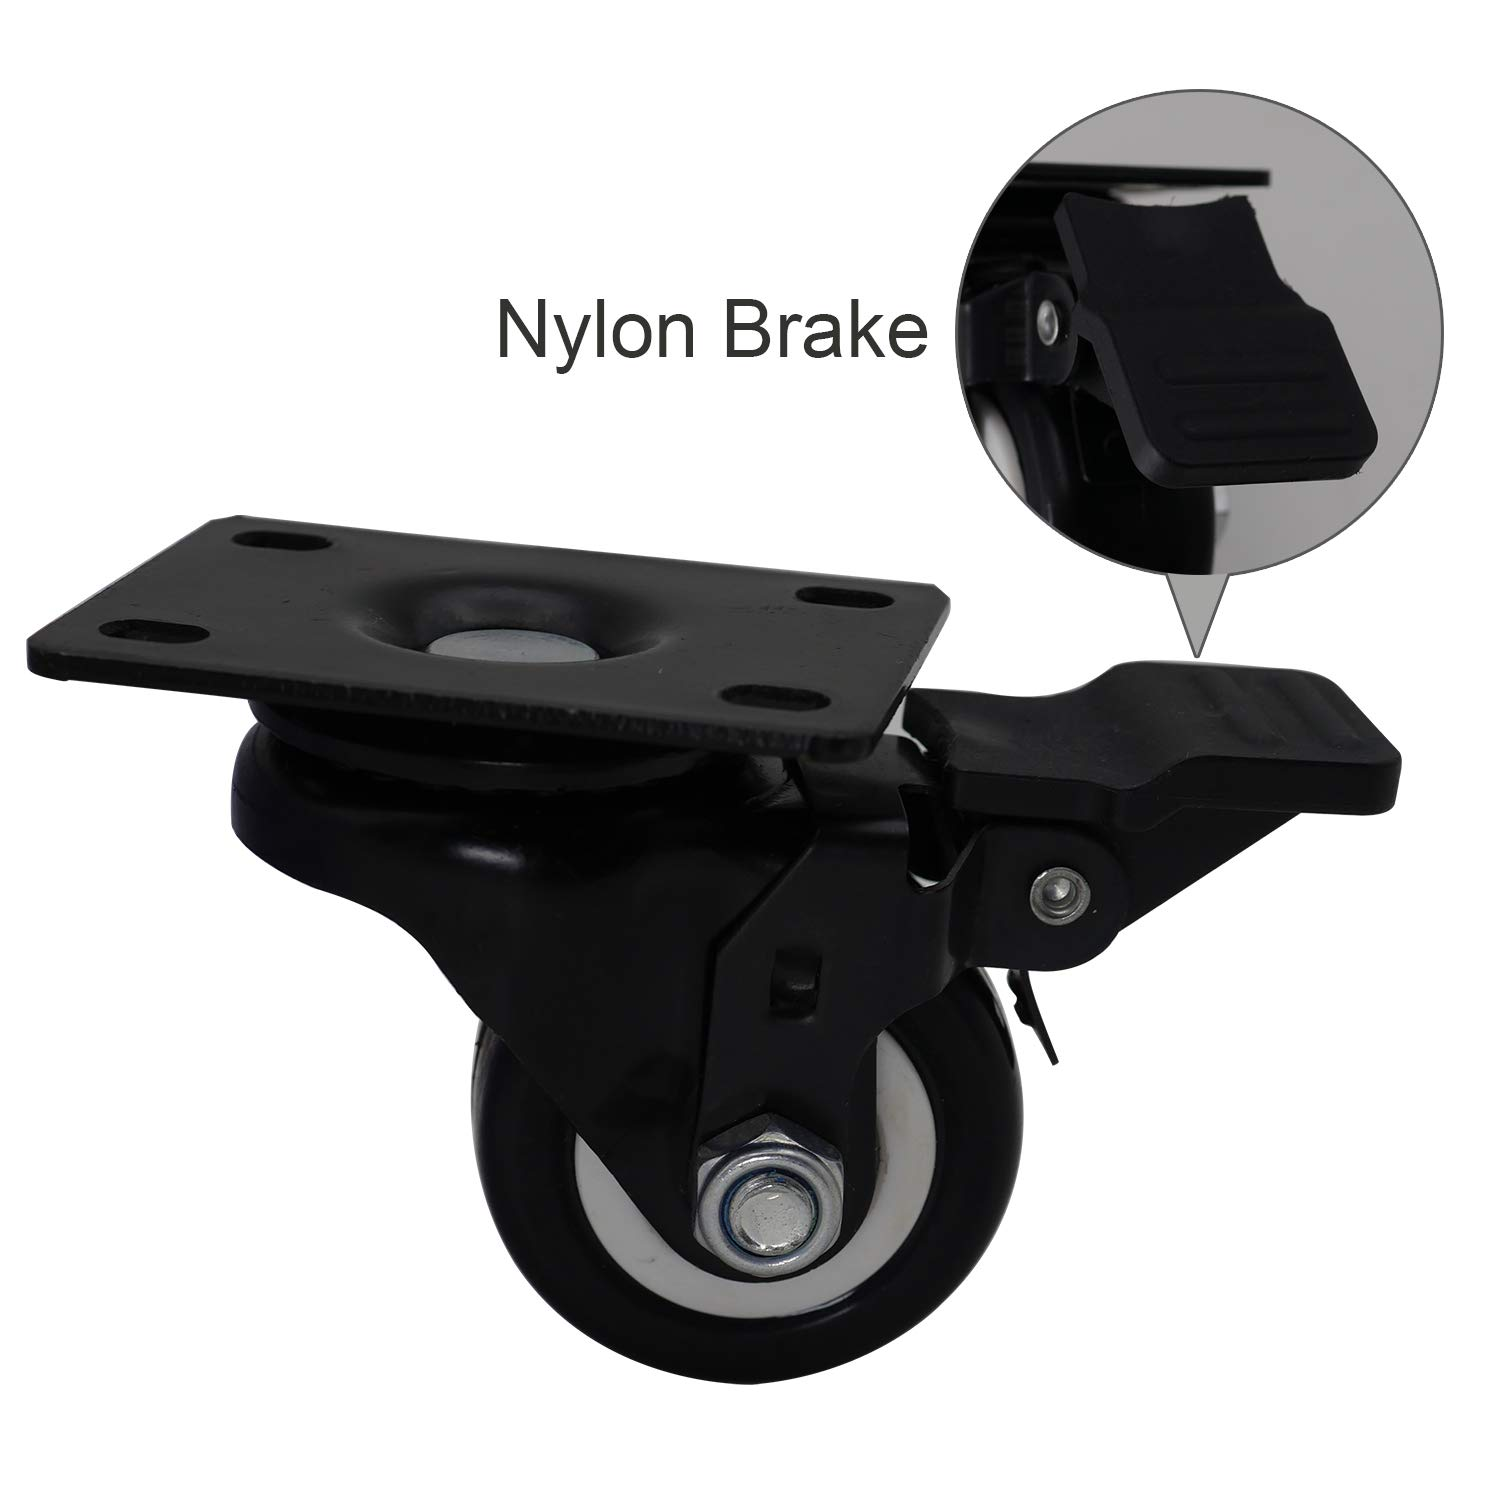 Pack of 4 Casoter 2 Inch Swivel Caster Wheels with Nylon Brake and Polyurethane Foam No Noise Wheels 150 Lbs Per Caster Heavy Duty